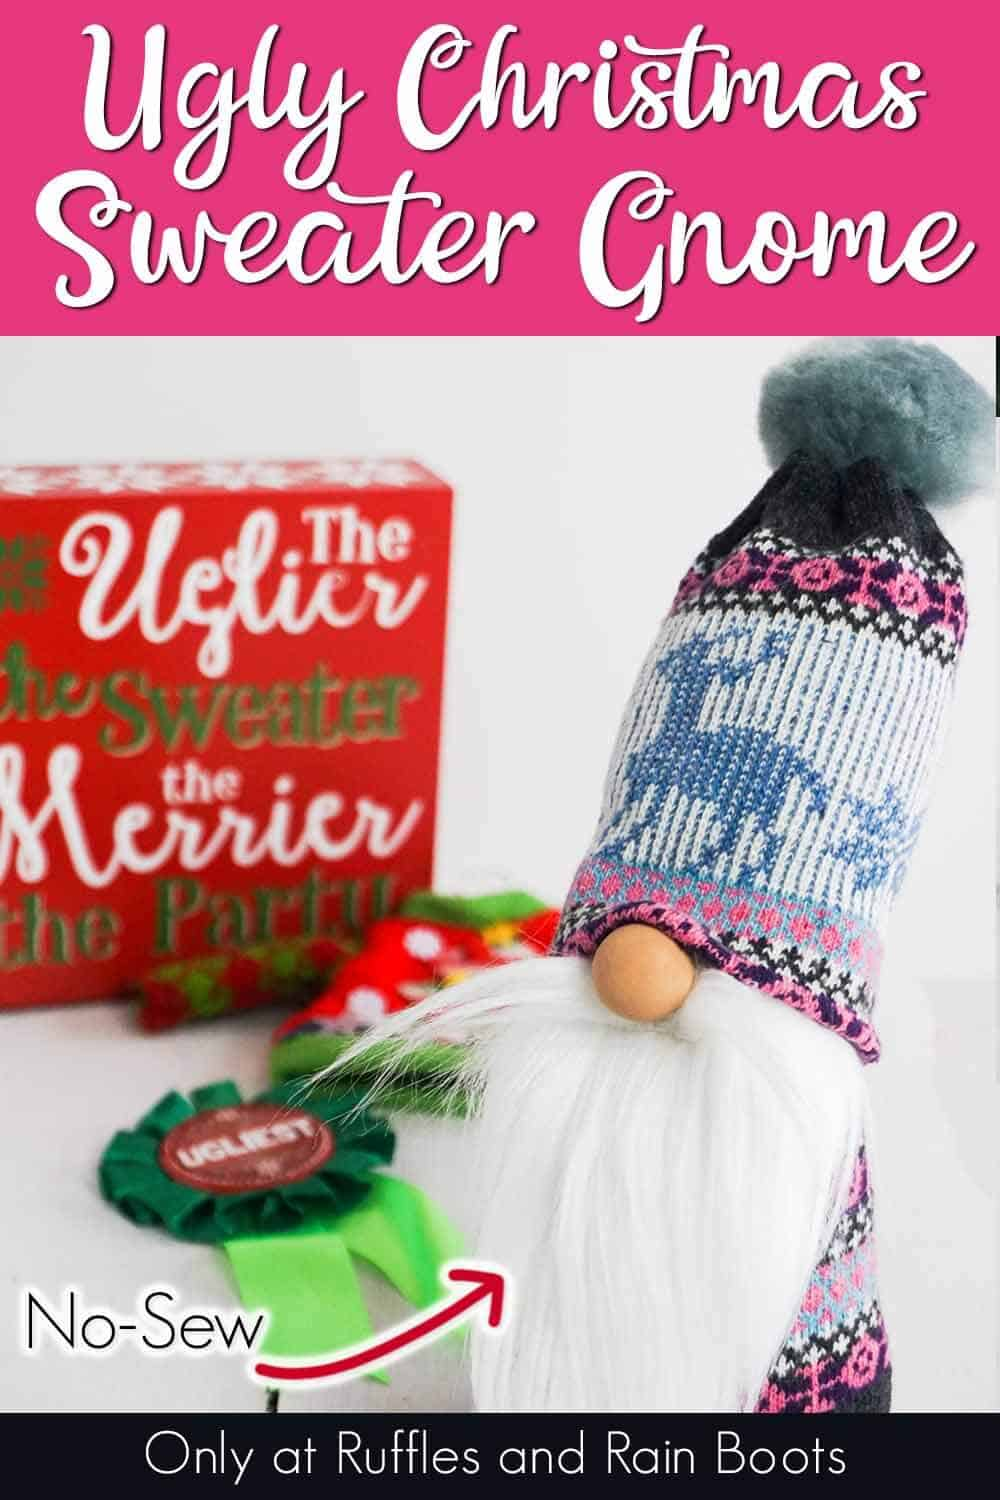 easy no-sew sock gnome with text which reads ugly christmas sweater gnome no-sew